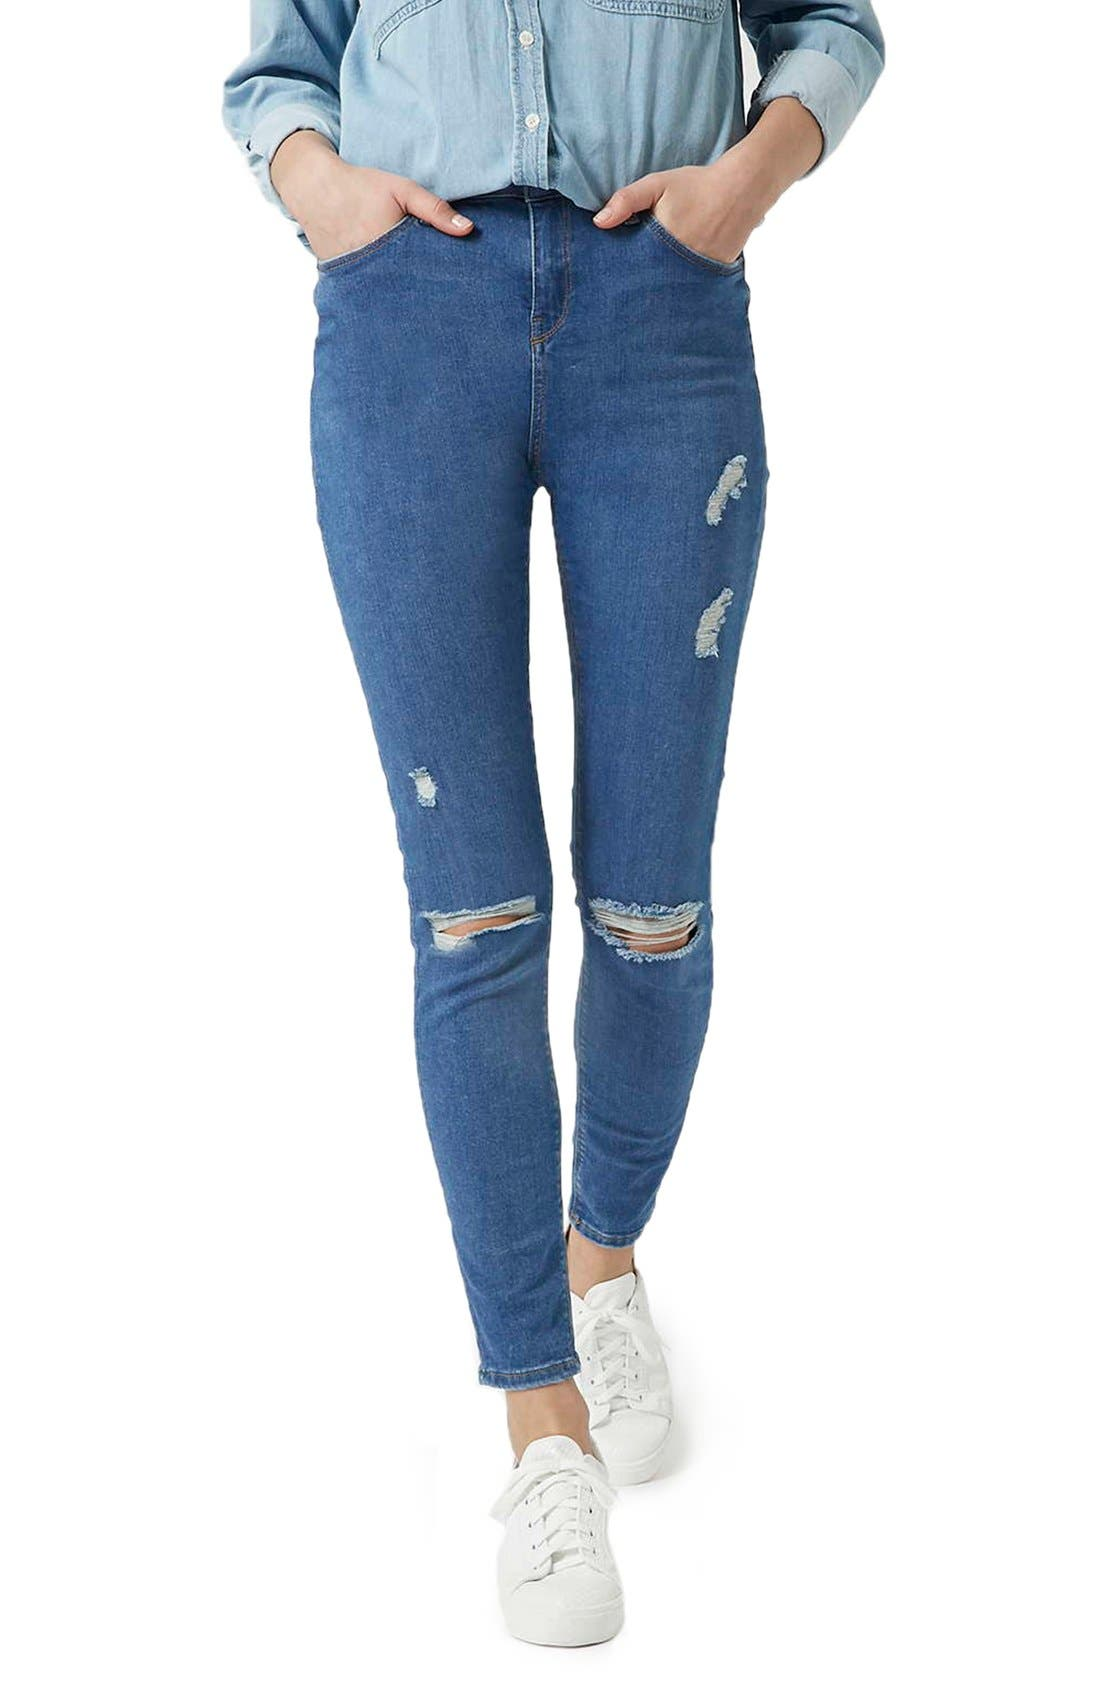 Alternate Image 1 Selected - Topshop Moto 'Jamie' Ripped Skinny Jeans (Mid Denim) (Tall)